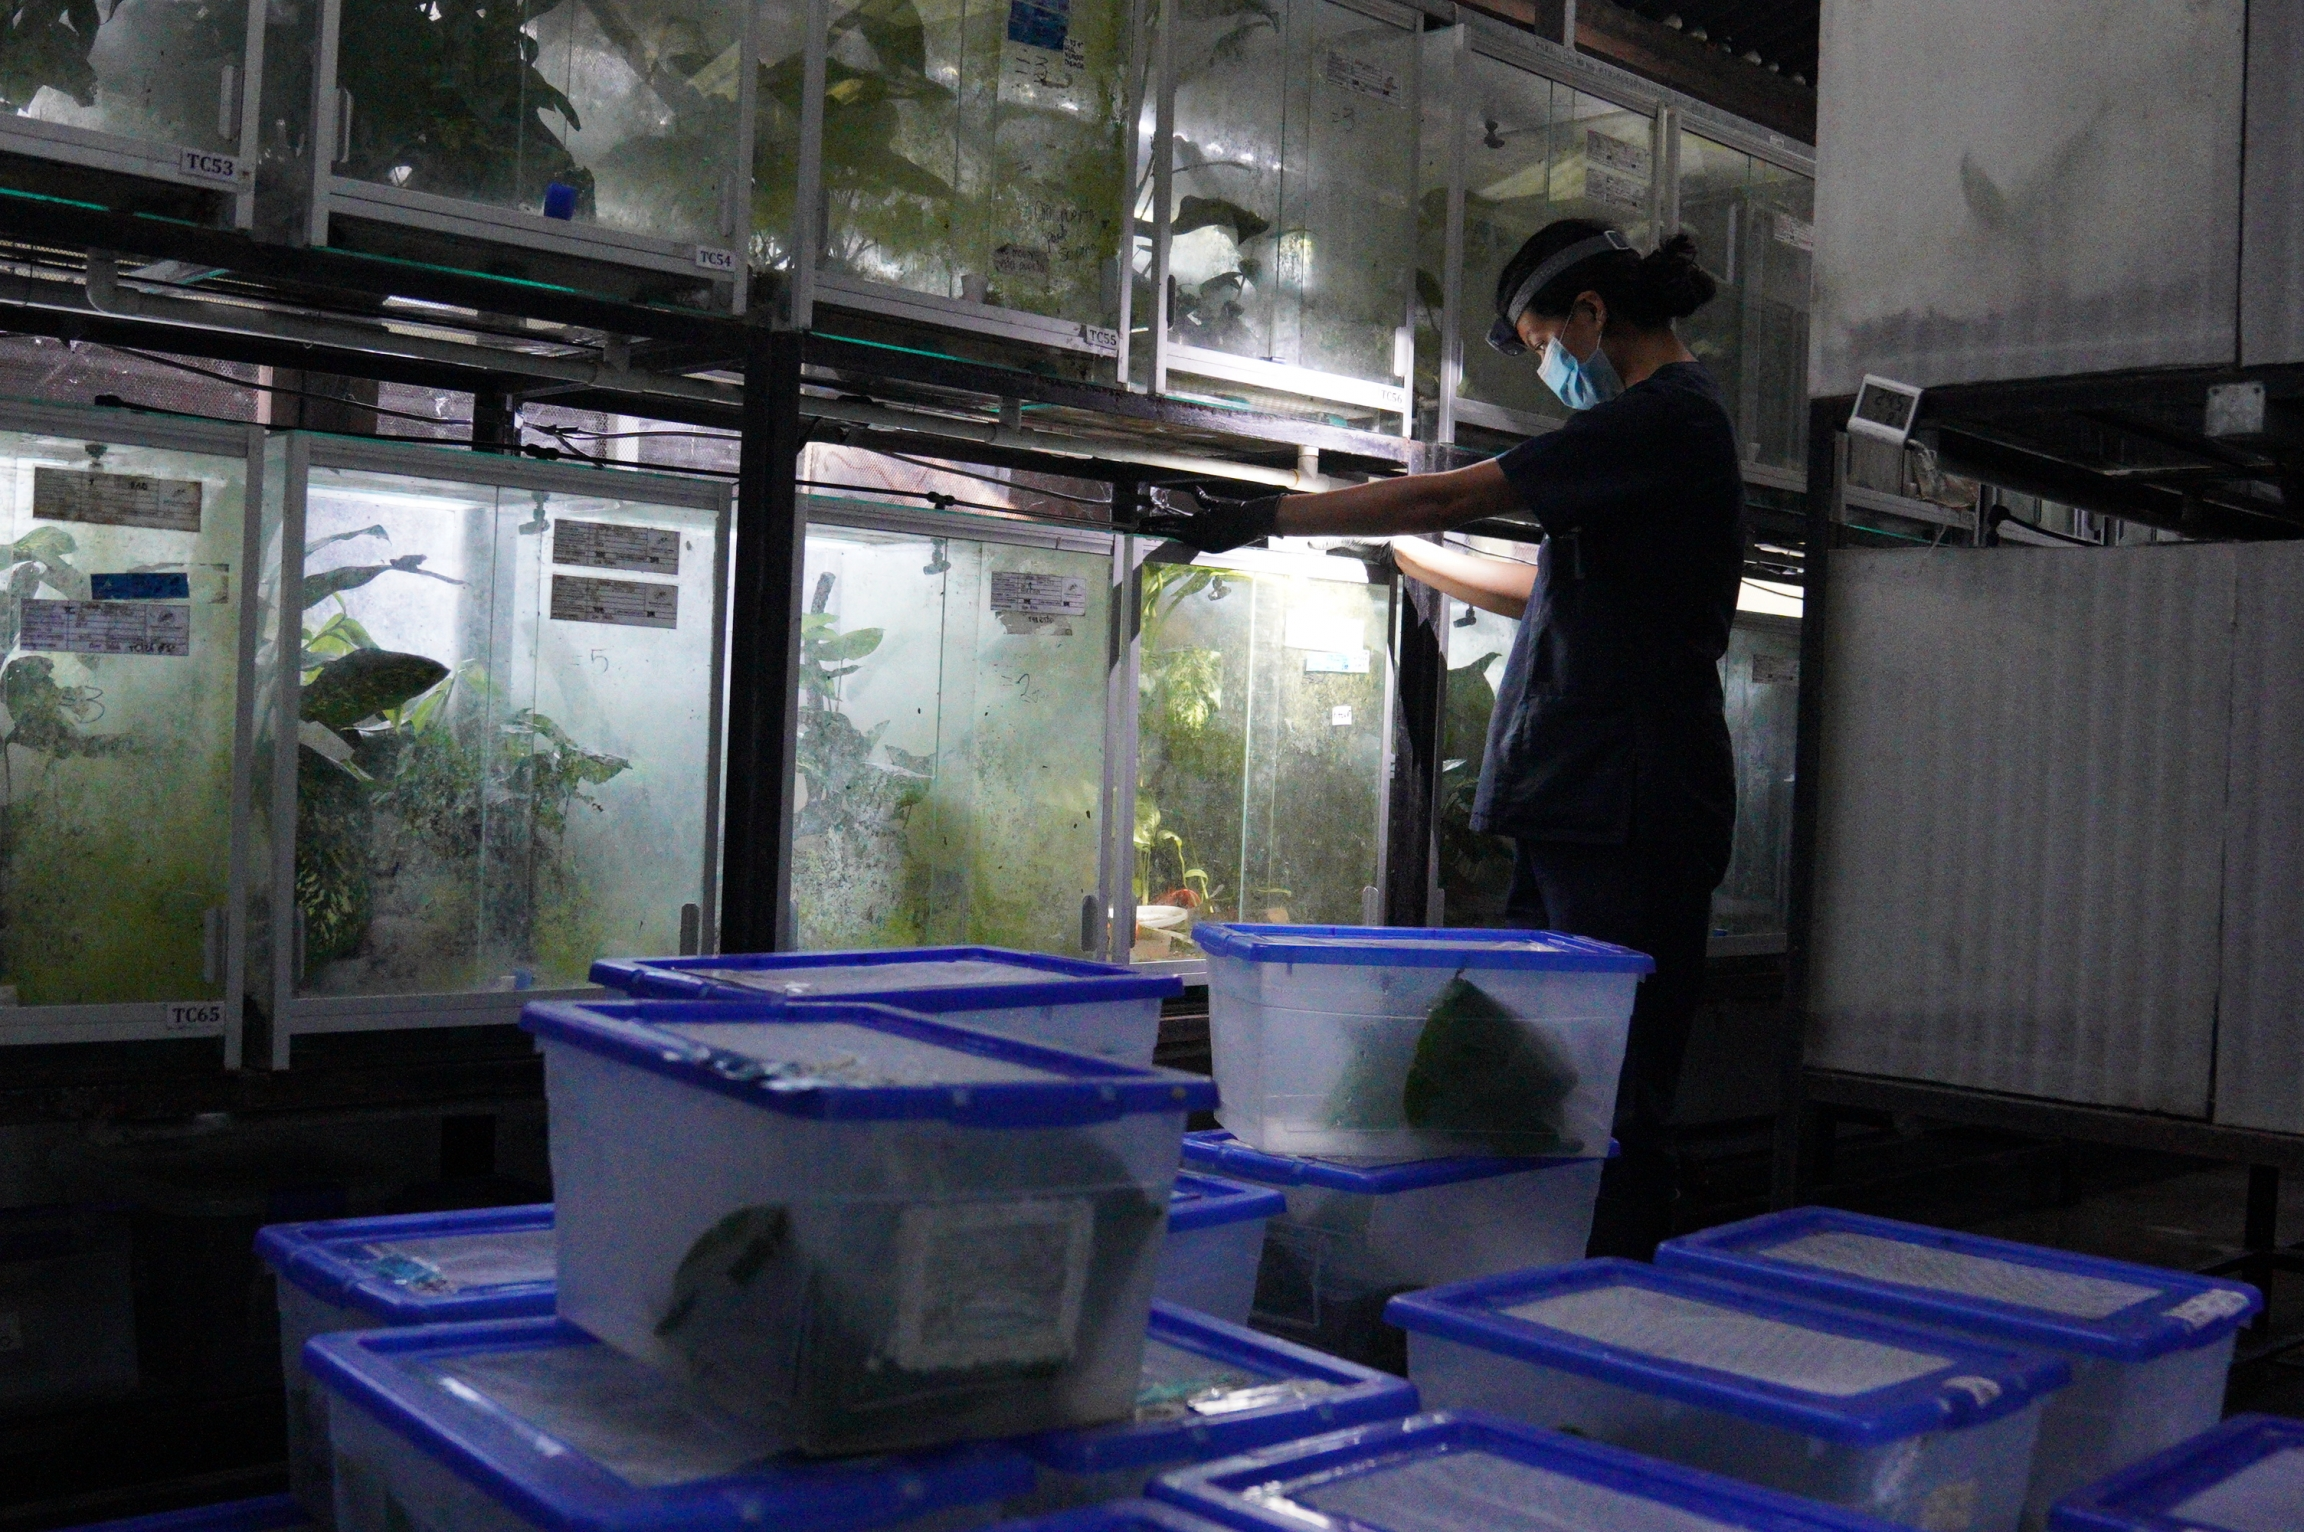 Glass cases known as terrariums hold the frogs.